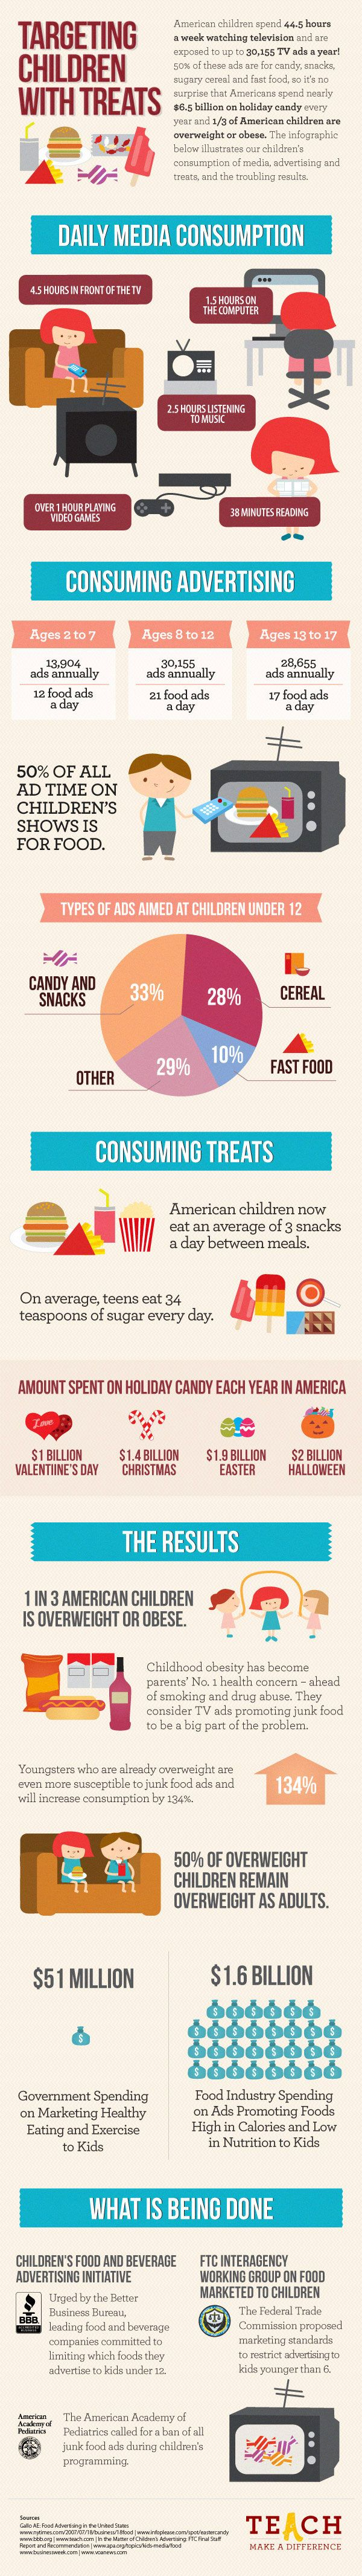 Strangers with candy? Try TVs with candy. A pictorial explanation of how media influences childhood obesity.